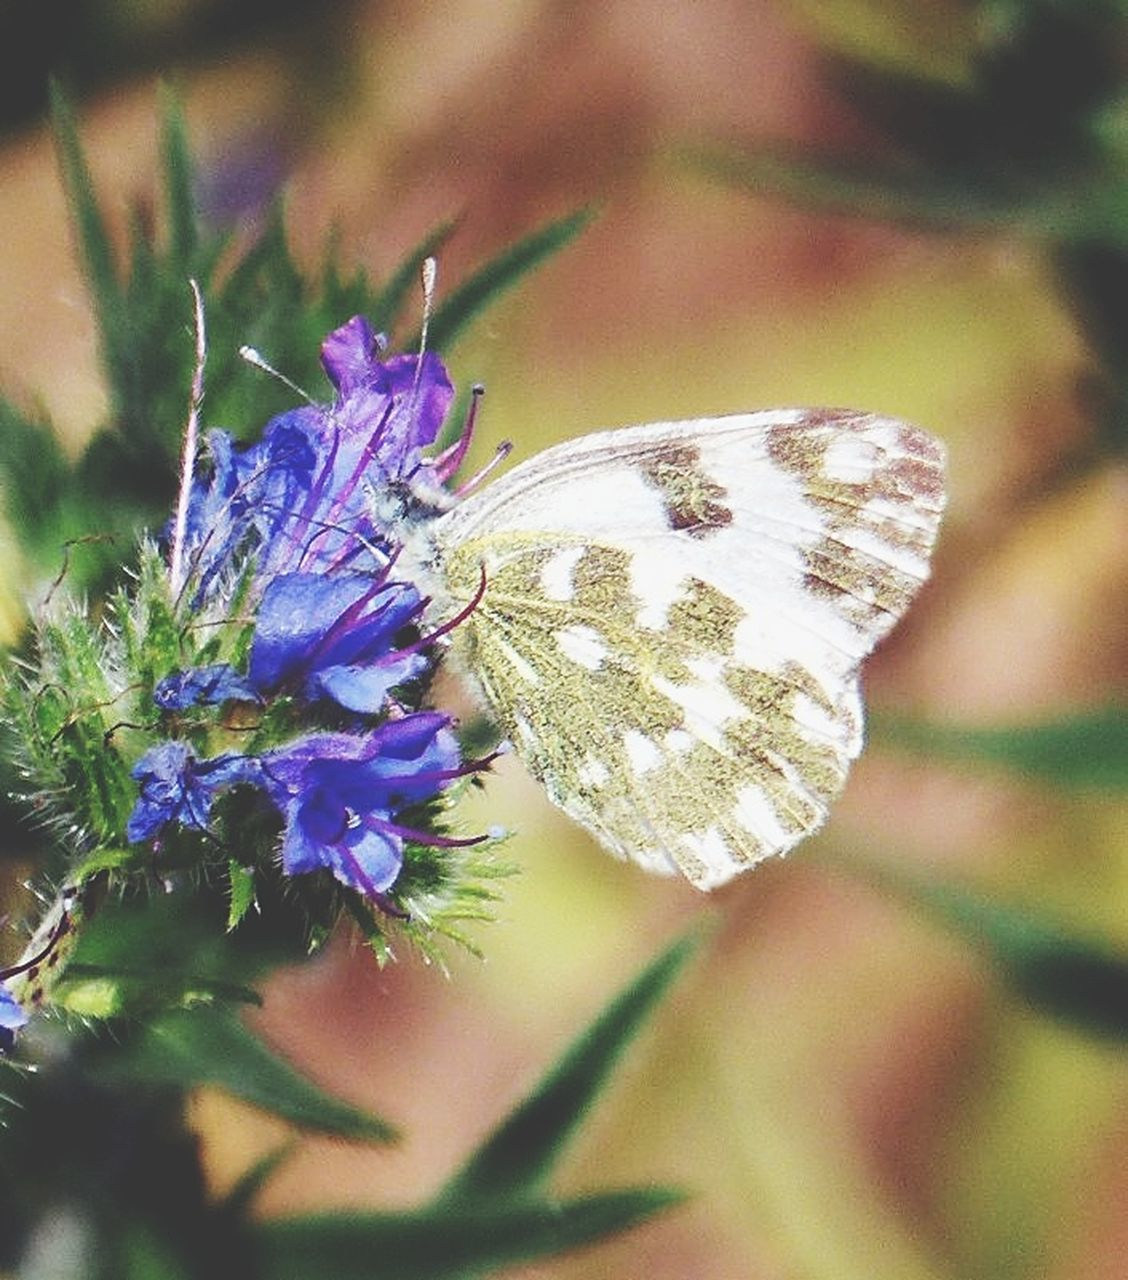 insect, animal themes, one animal, animals in the wild, flower, butterfly - insect, nature, close-up, no people, fragility, plant, day, beauty in nature, butterfly, growth, focus on foreground, outdoors, freshness, pollination, animal wildlife, flower head